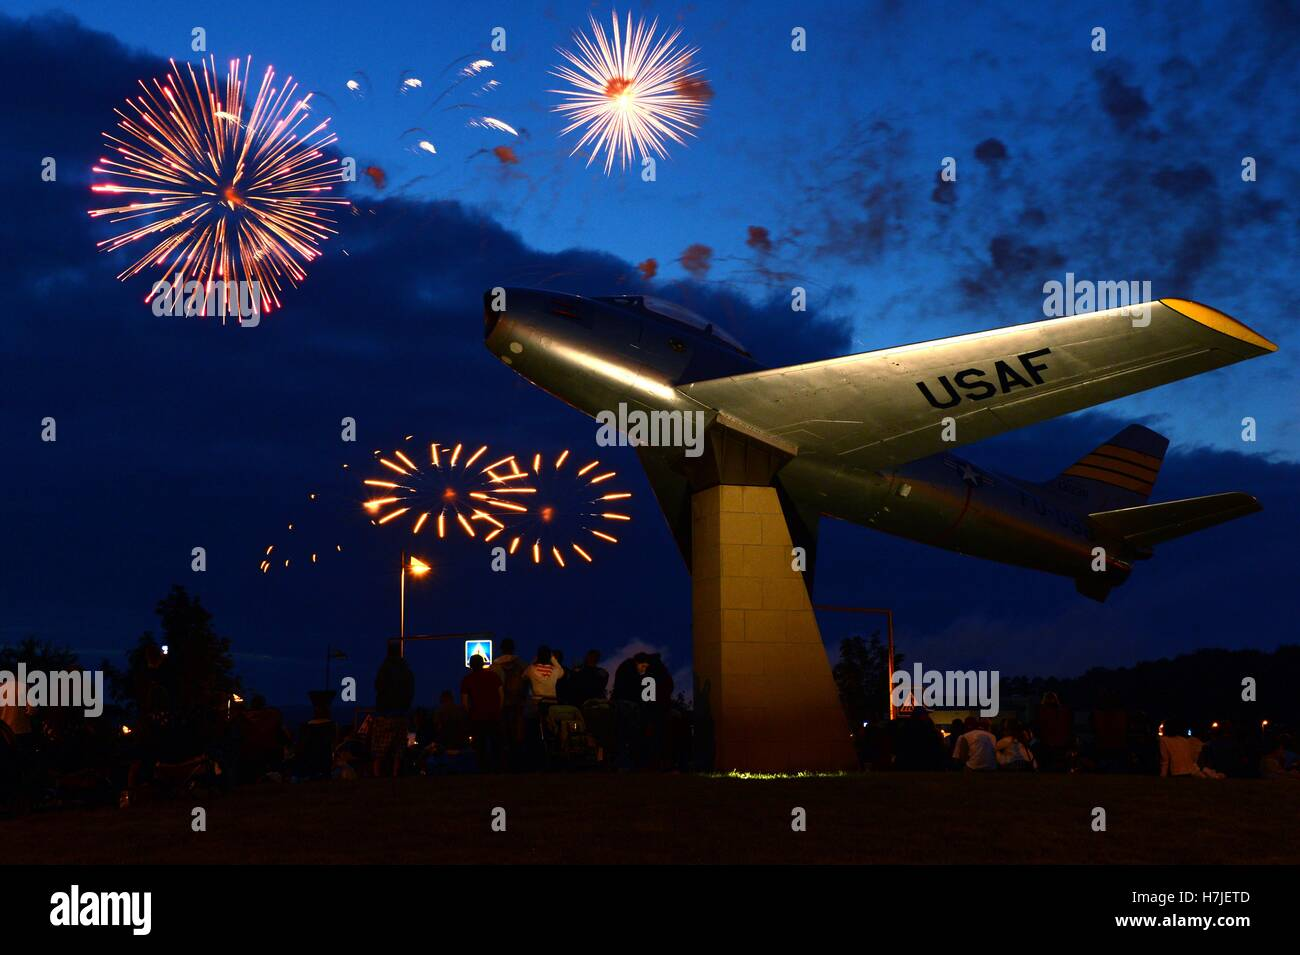 Fireworks explode in the night sky during Super Saber Appreciation Day and U.S. Independence Day at the Spangdahlem - Stock Image